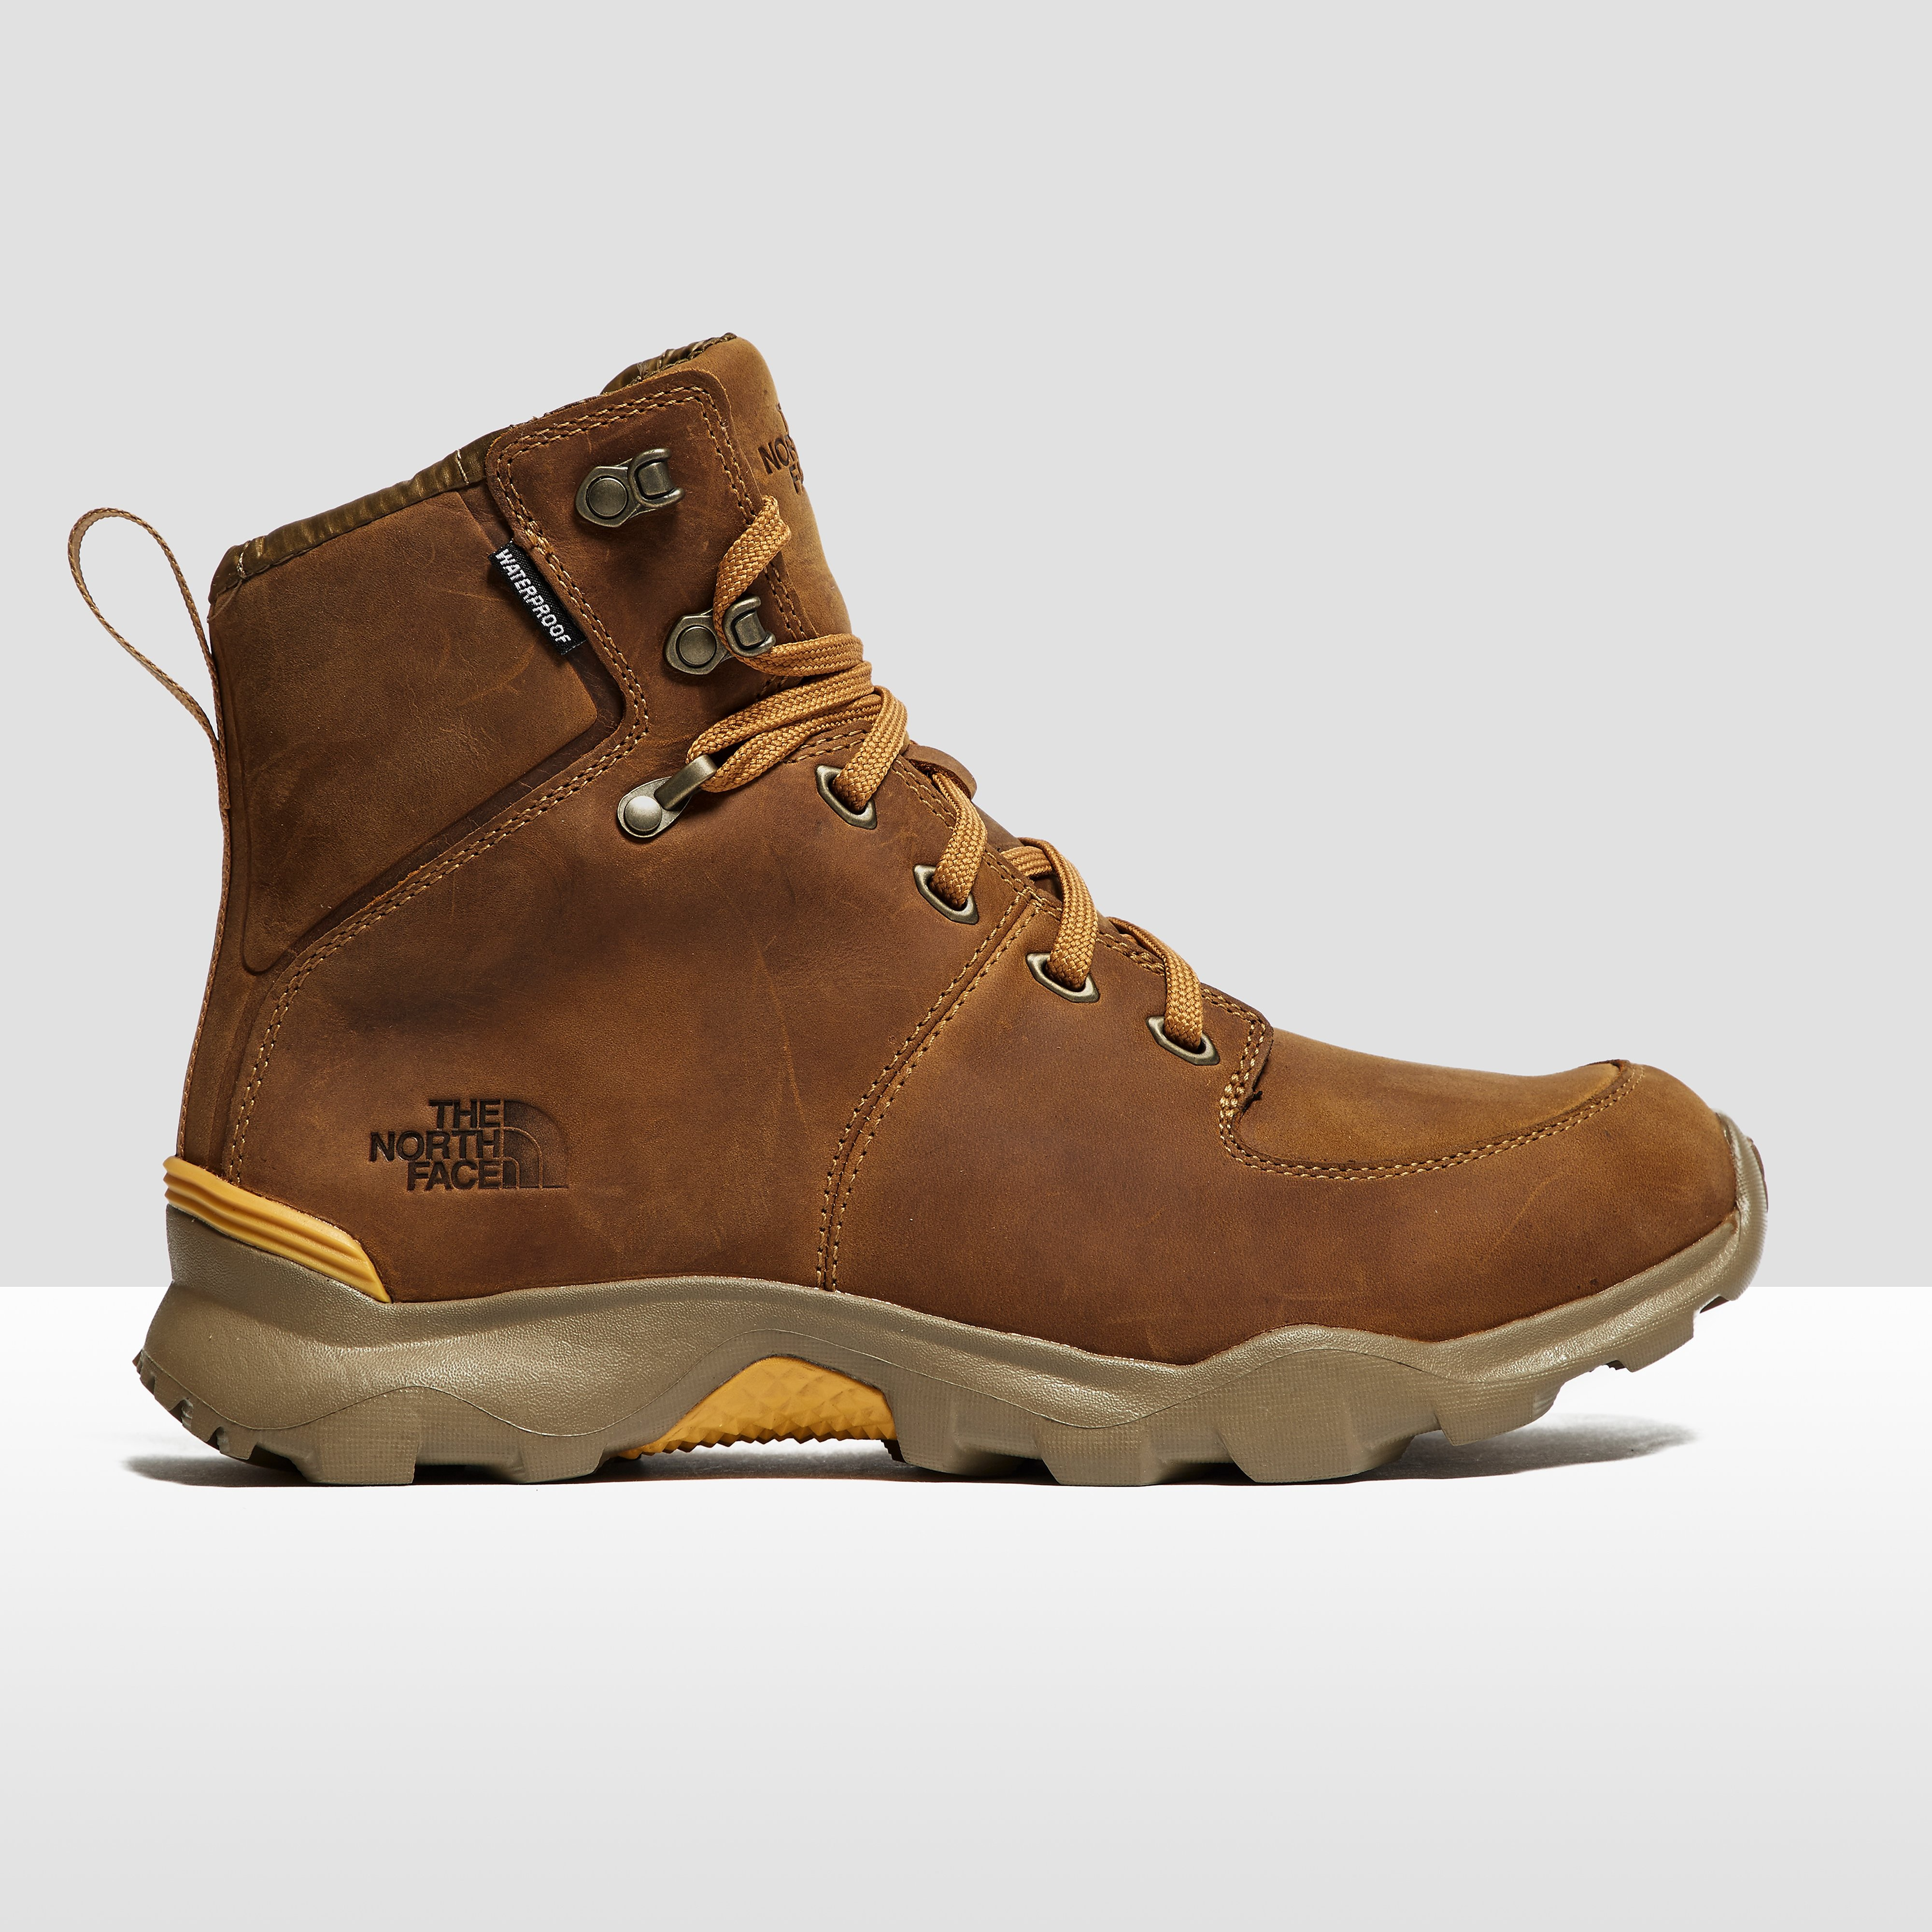 The North Face Thermoball Versa Men's Boots